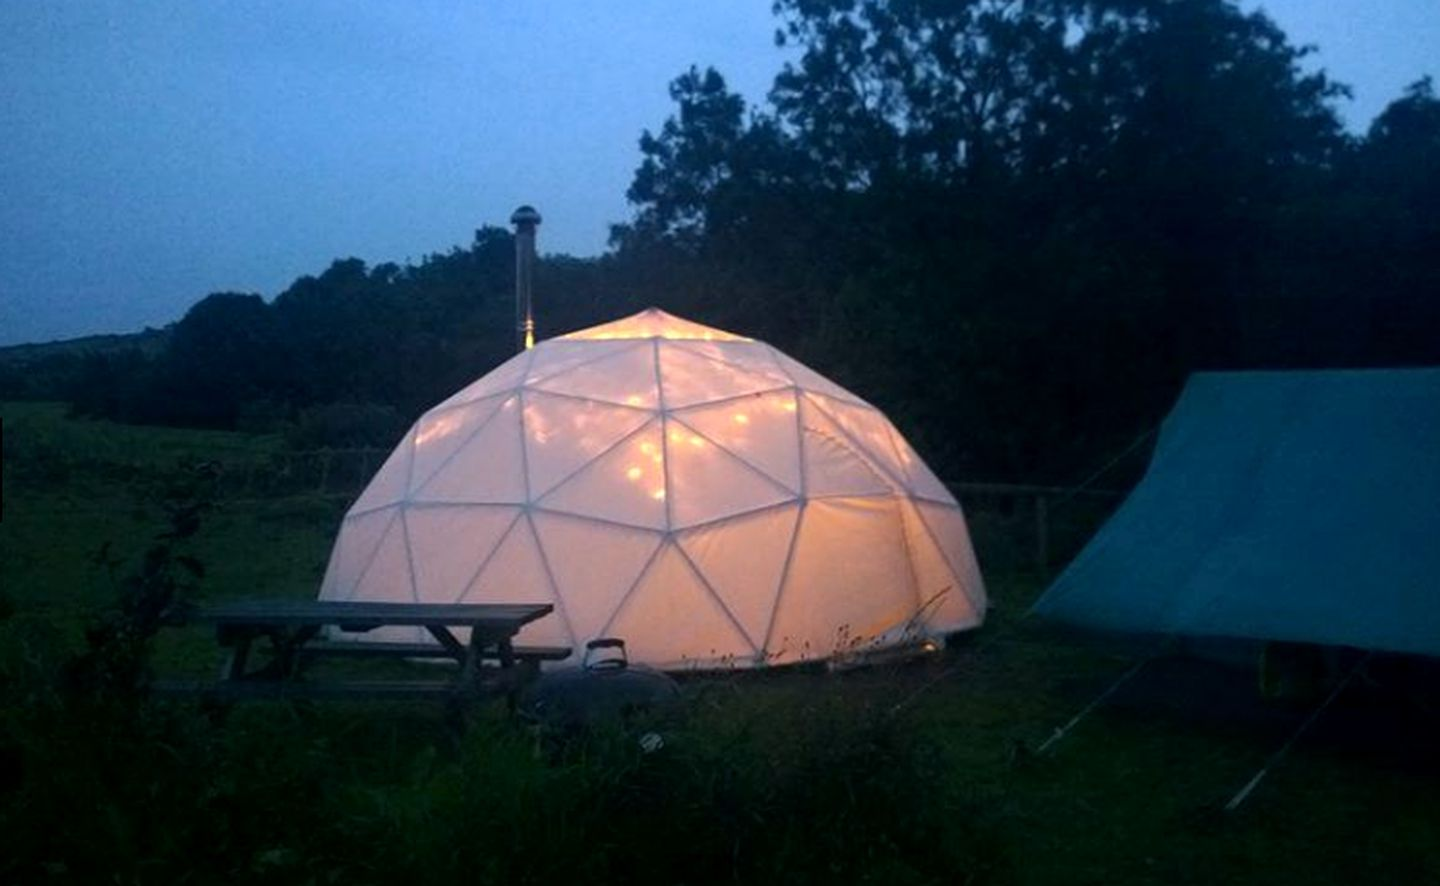 Bubbles & Domes (Harverfordwest, Wales, United Kingdom)